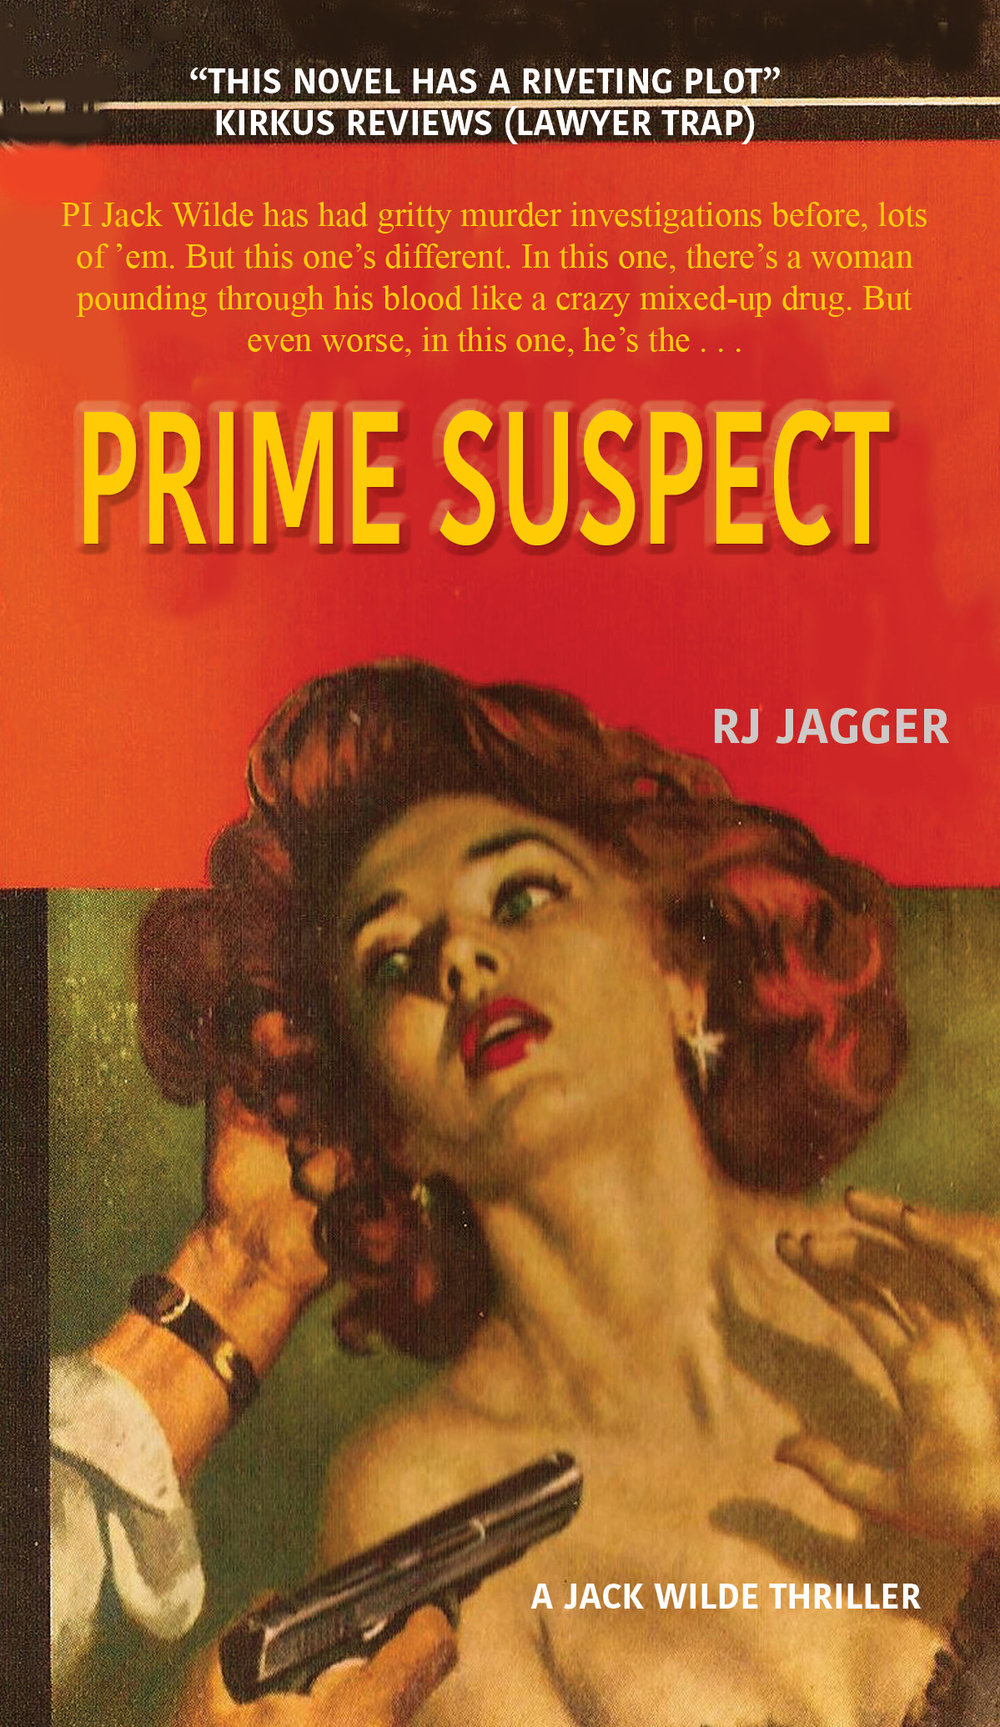 PRIME SUSPECT - Private investigator Jack Wilde lives in an edgy 1952 world where nothing is black and white, cigarettes dangle from ruby-red lips, and even the simplest case has more dangerous twists than whiskey-soaked jazz. Sure, he's had gritty murder investigations before. Lots of 'em. But this one's different. In this one, more than one person is out to kill him. And in this one, there's a woman pounding through his blood like a crazy mixed-up drug. And most importantly of all, in this one, he's the prime suspect.